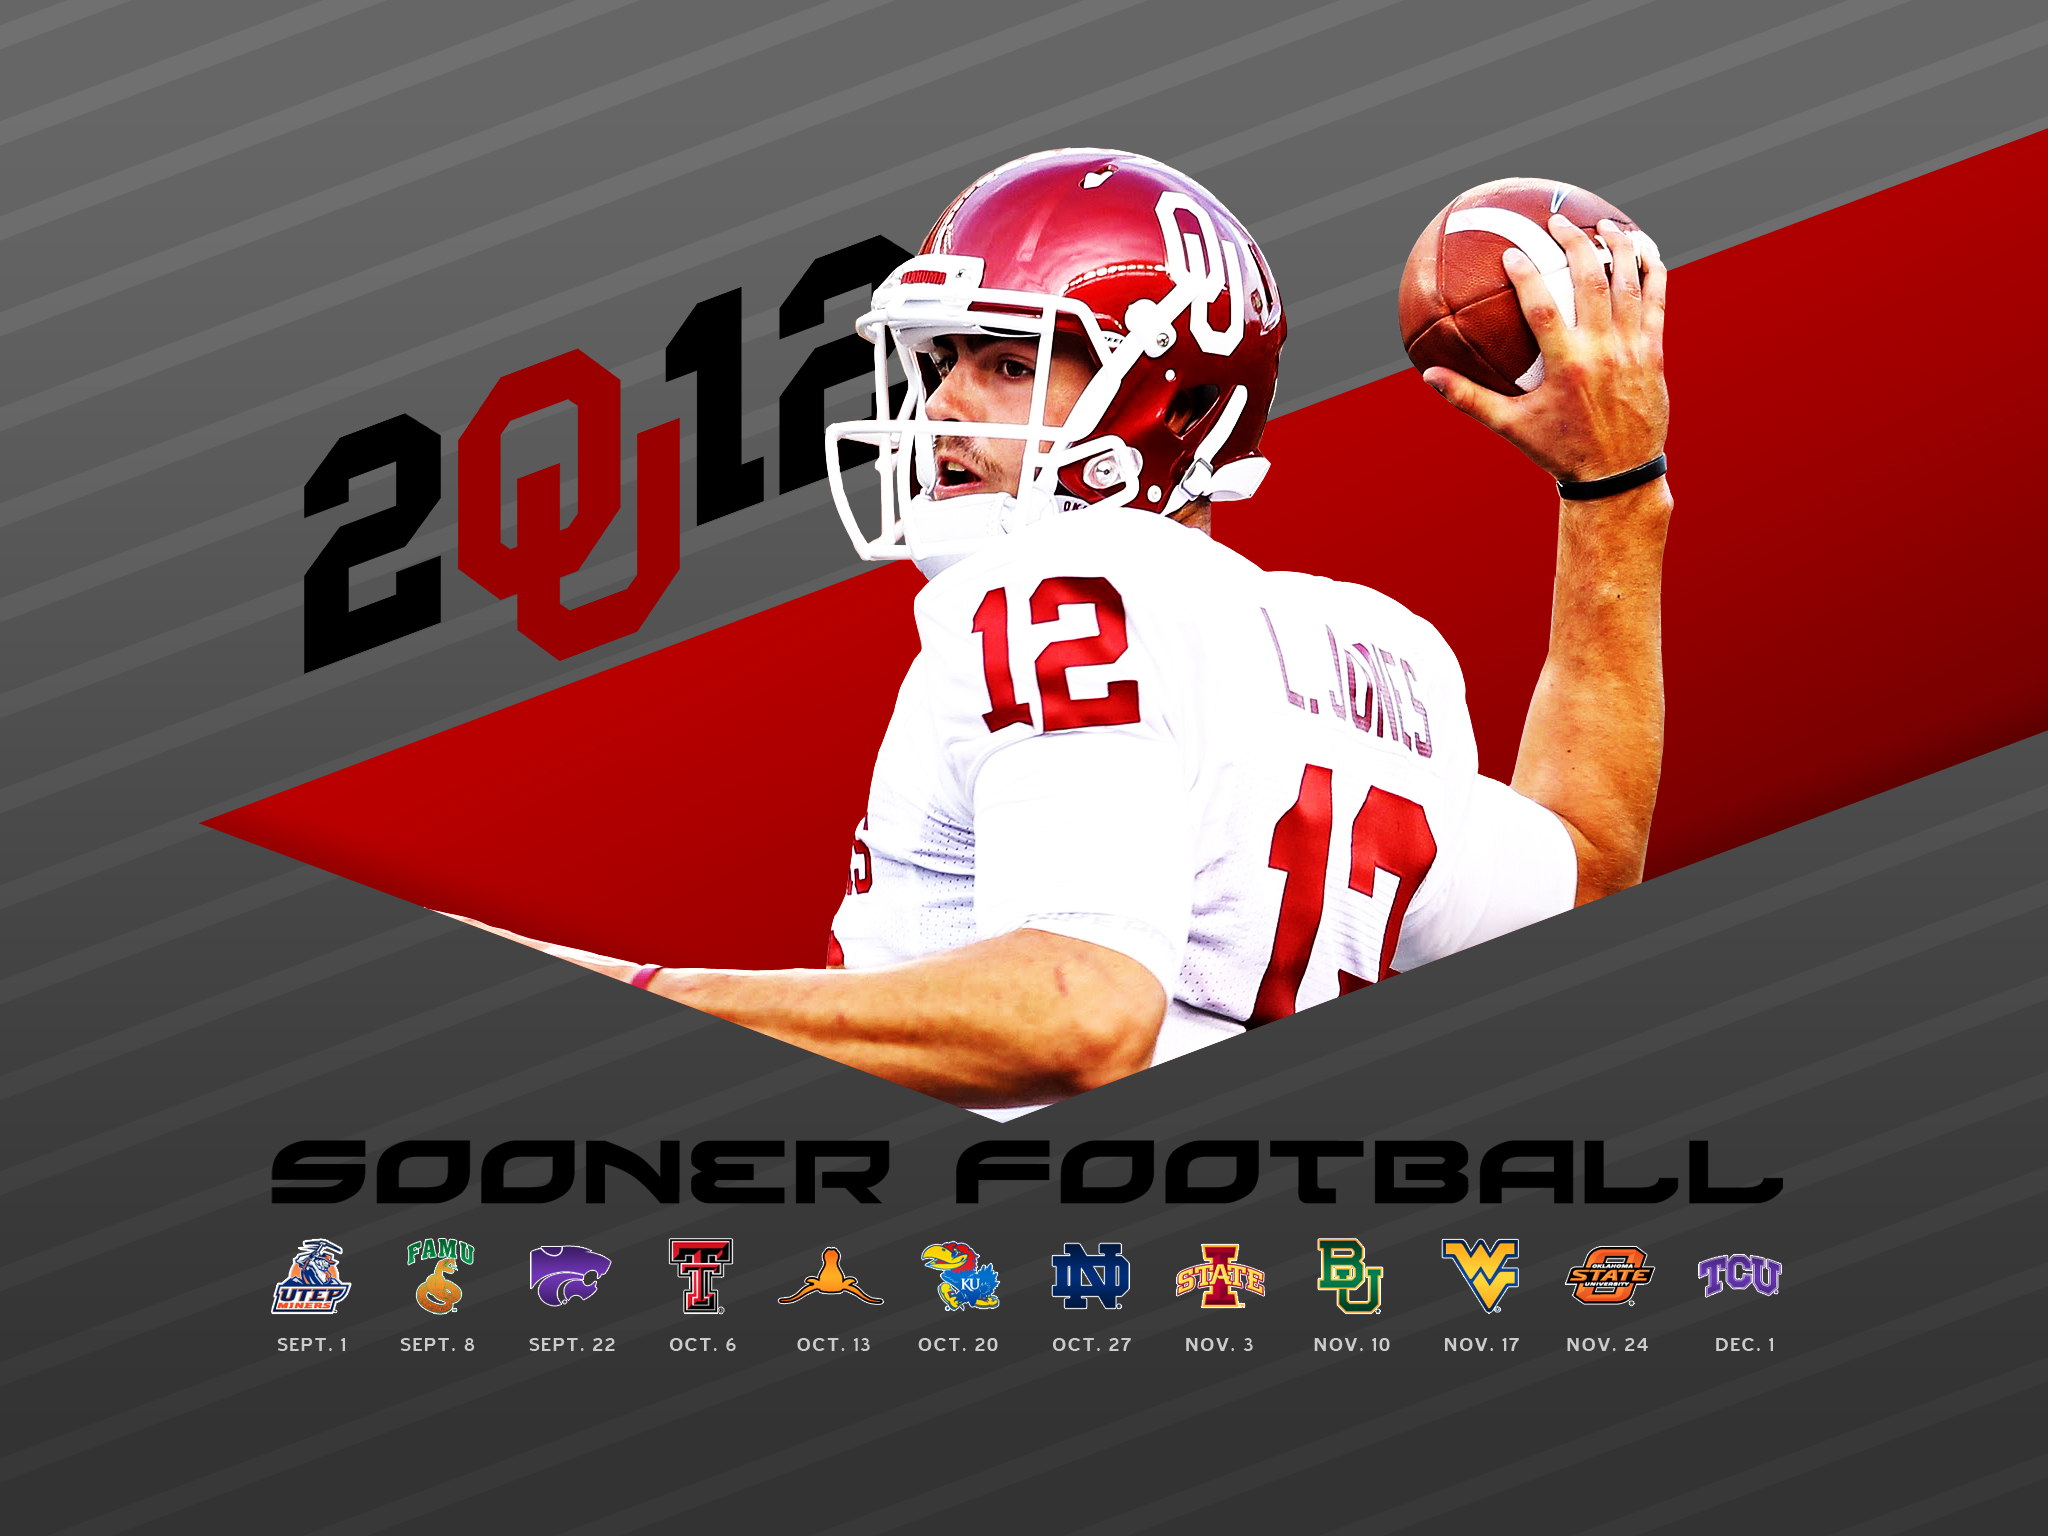 2012 OU Football Schedule Wallpaper for iPhone iPad 2048x1536